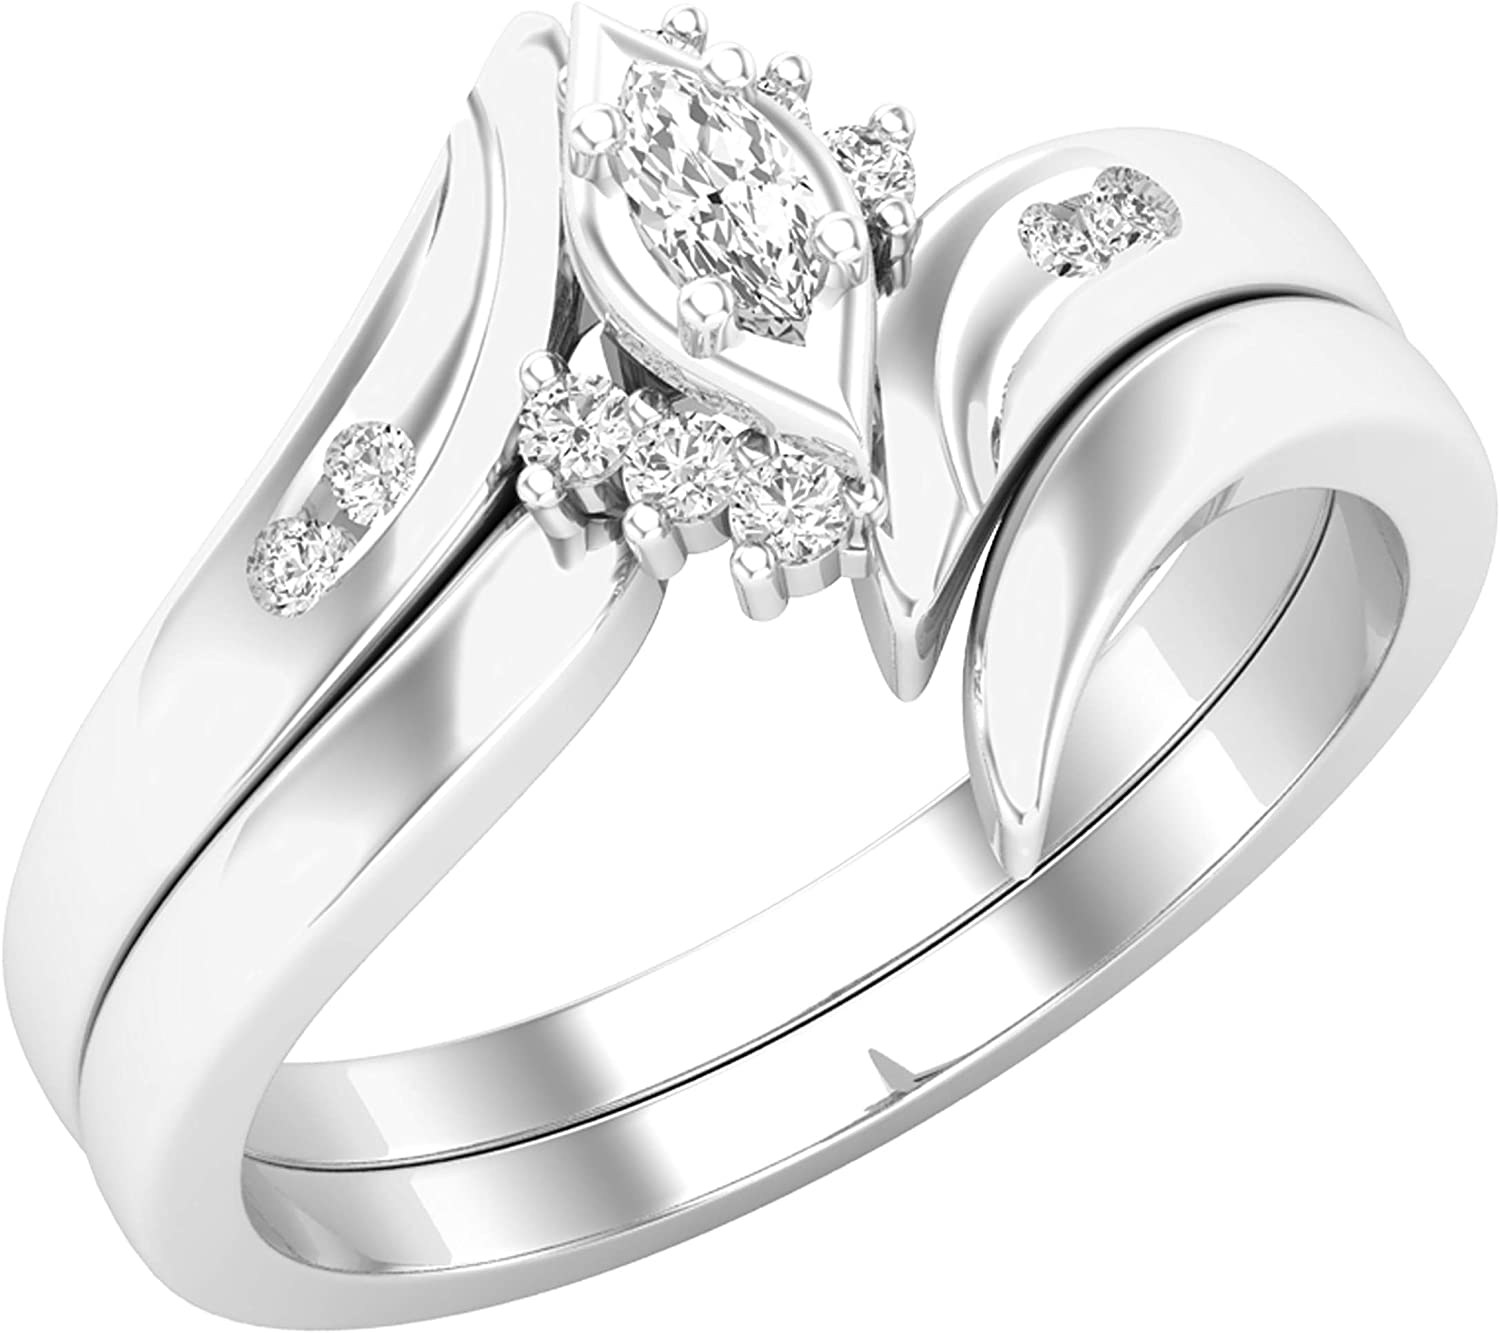 Dazzlingrock Collection 0.15 Carat (ctw) Marquise & Round White Diamond Bridal Engagement Ring Set, Available In 10K/14K/18K Gold & 925 Sterling Silver